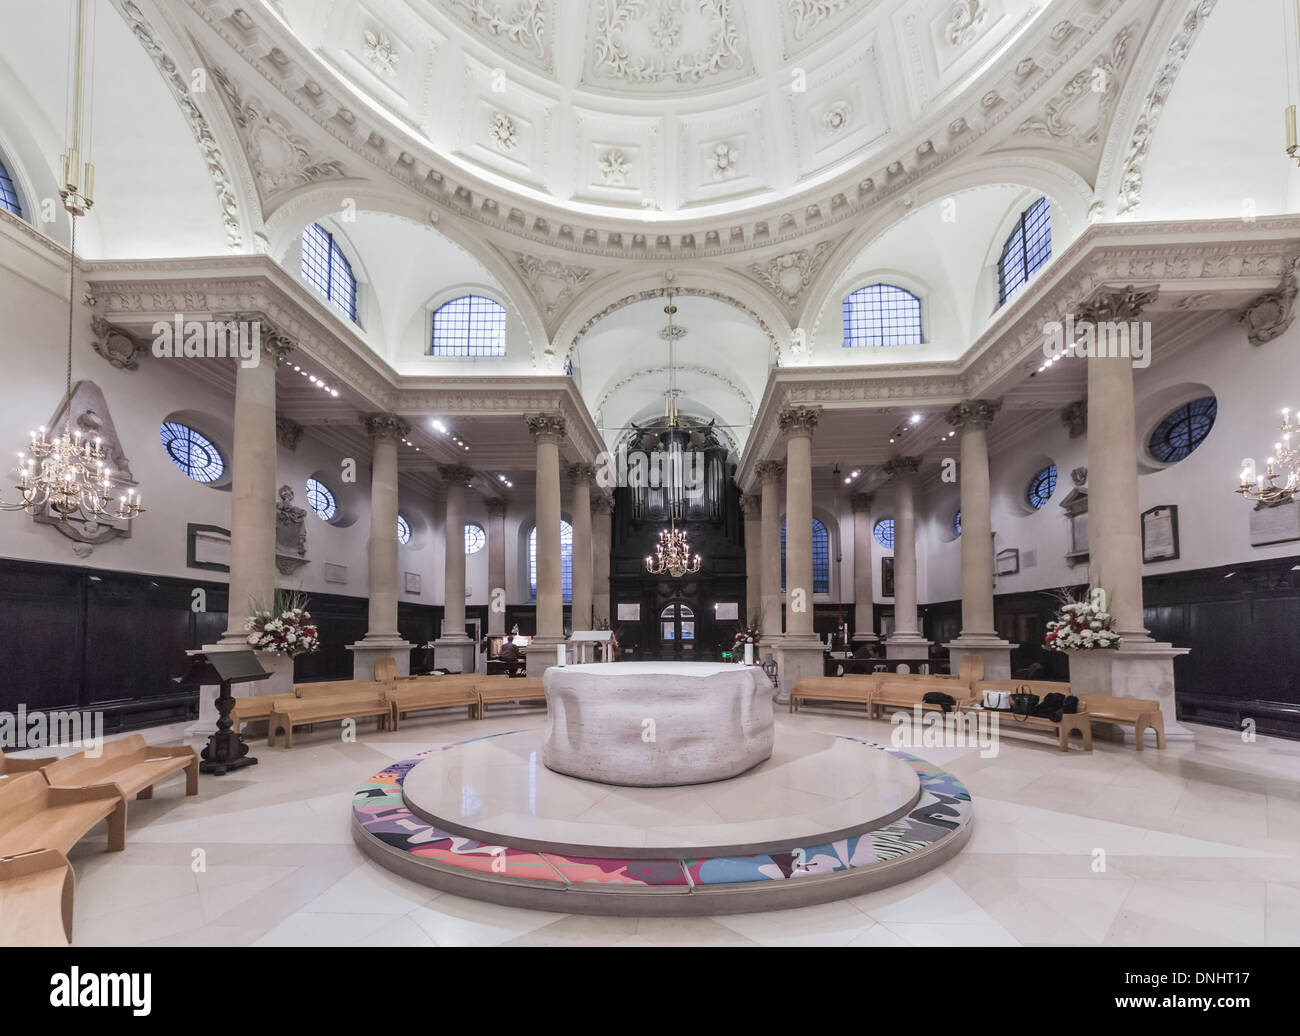 Stock Photo   The Church Of St Stephen Walbrook In The City Of London, EC4,  With Dome By Sir Christoper Wren And Altar By Henry Moore, Associated With  Chad ... Gallery